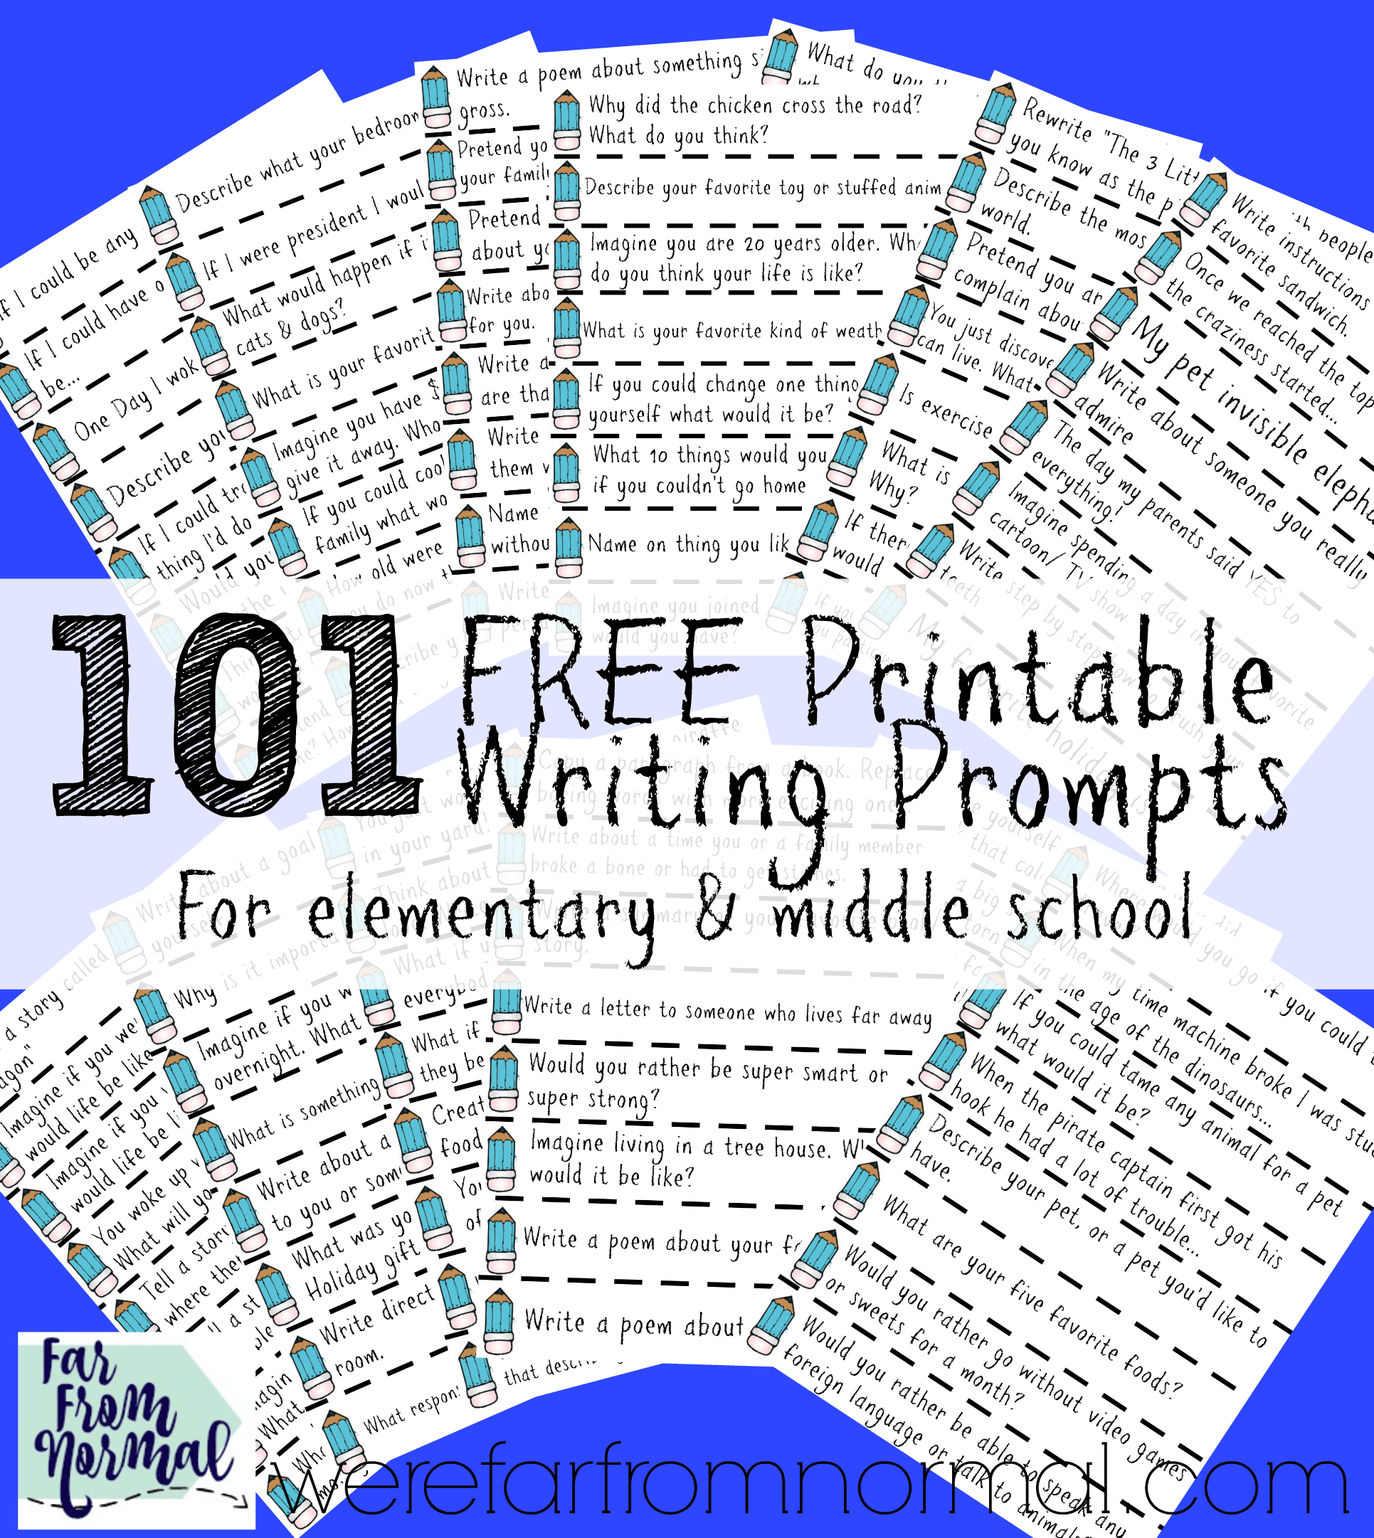 101 Free Printable Writing Prompts